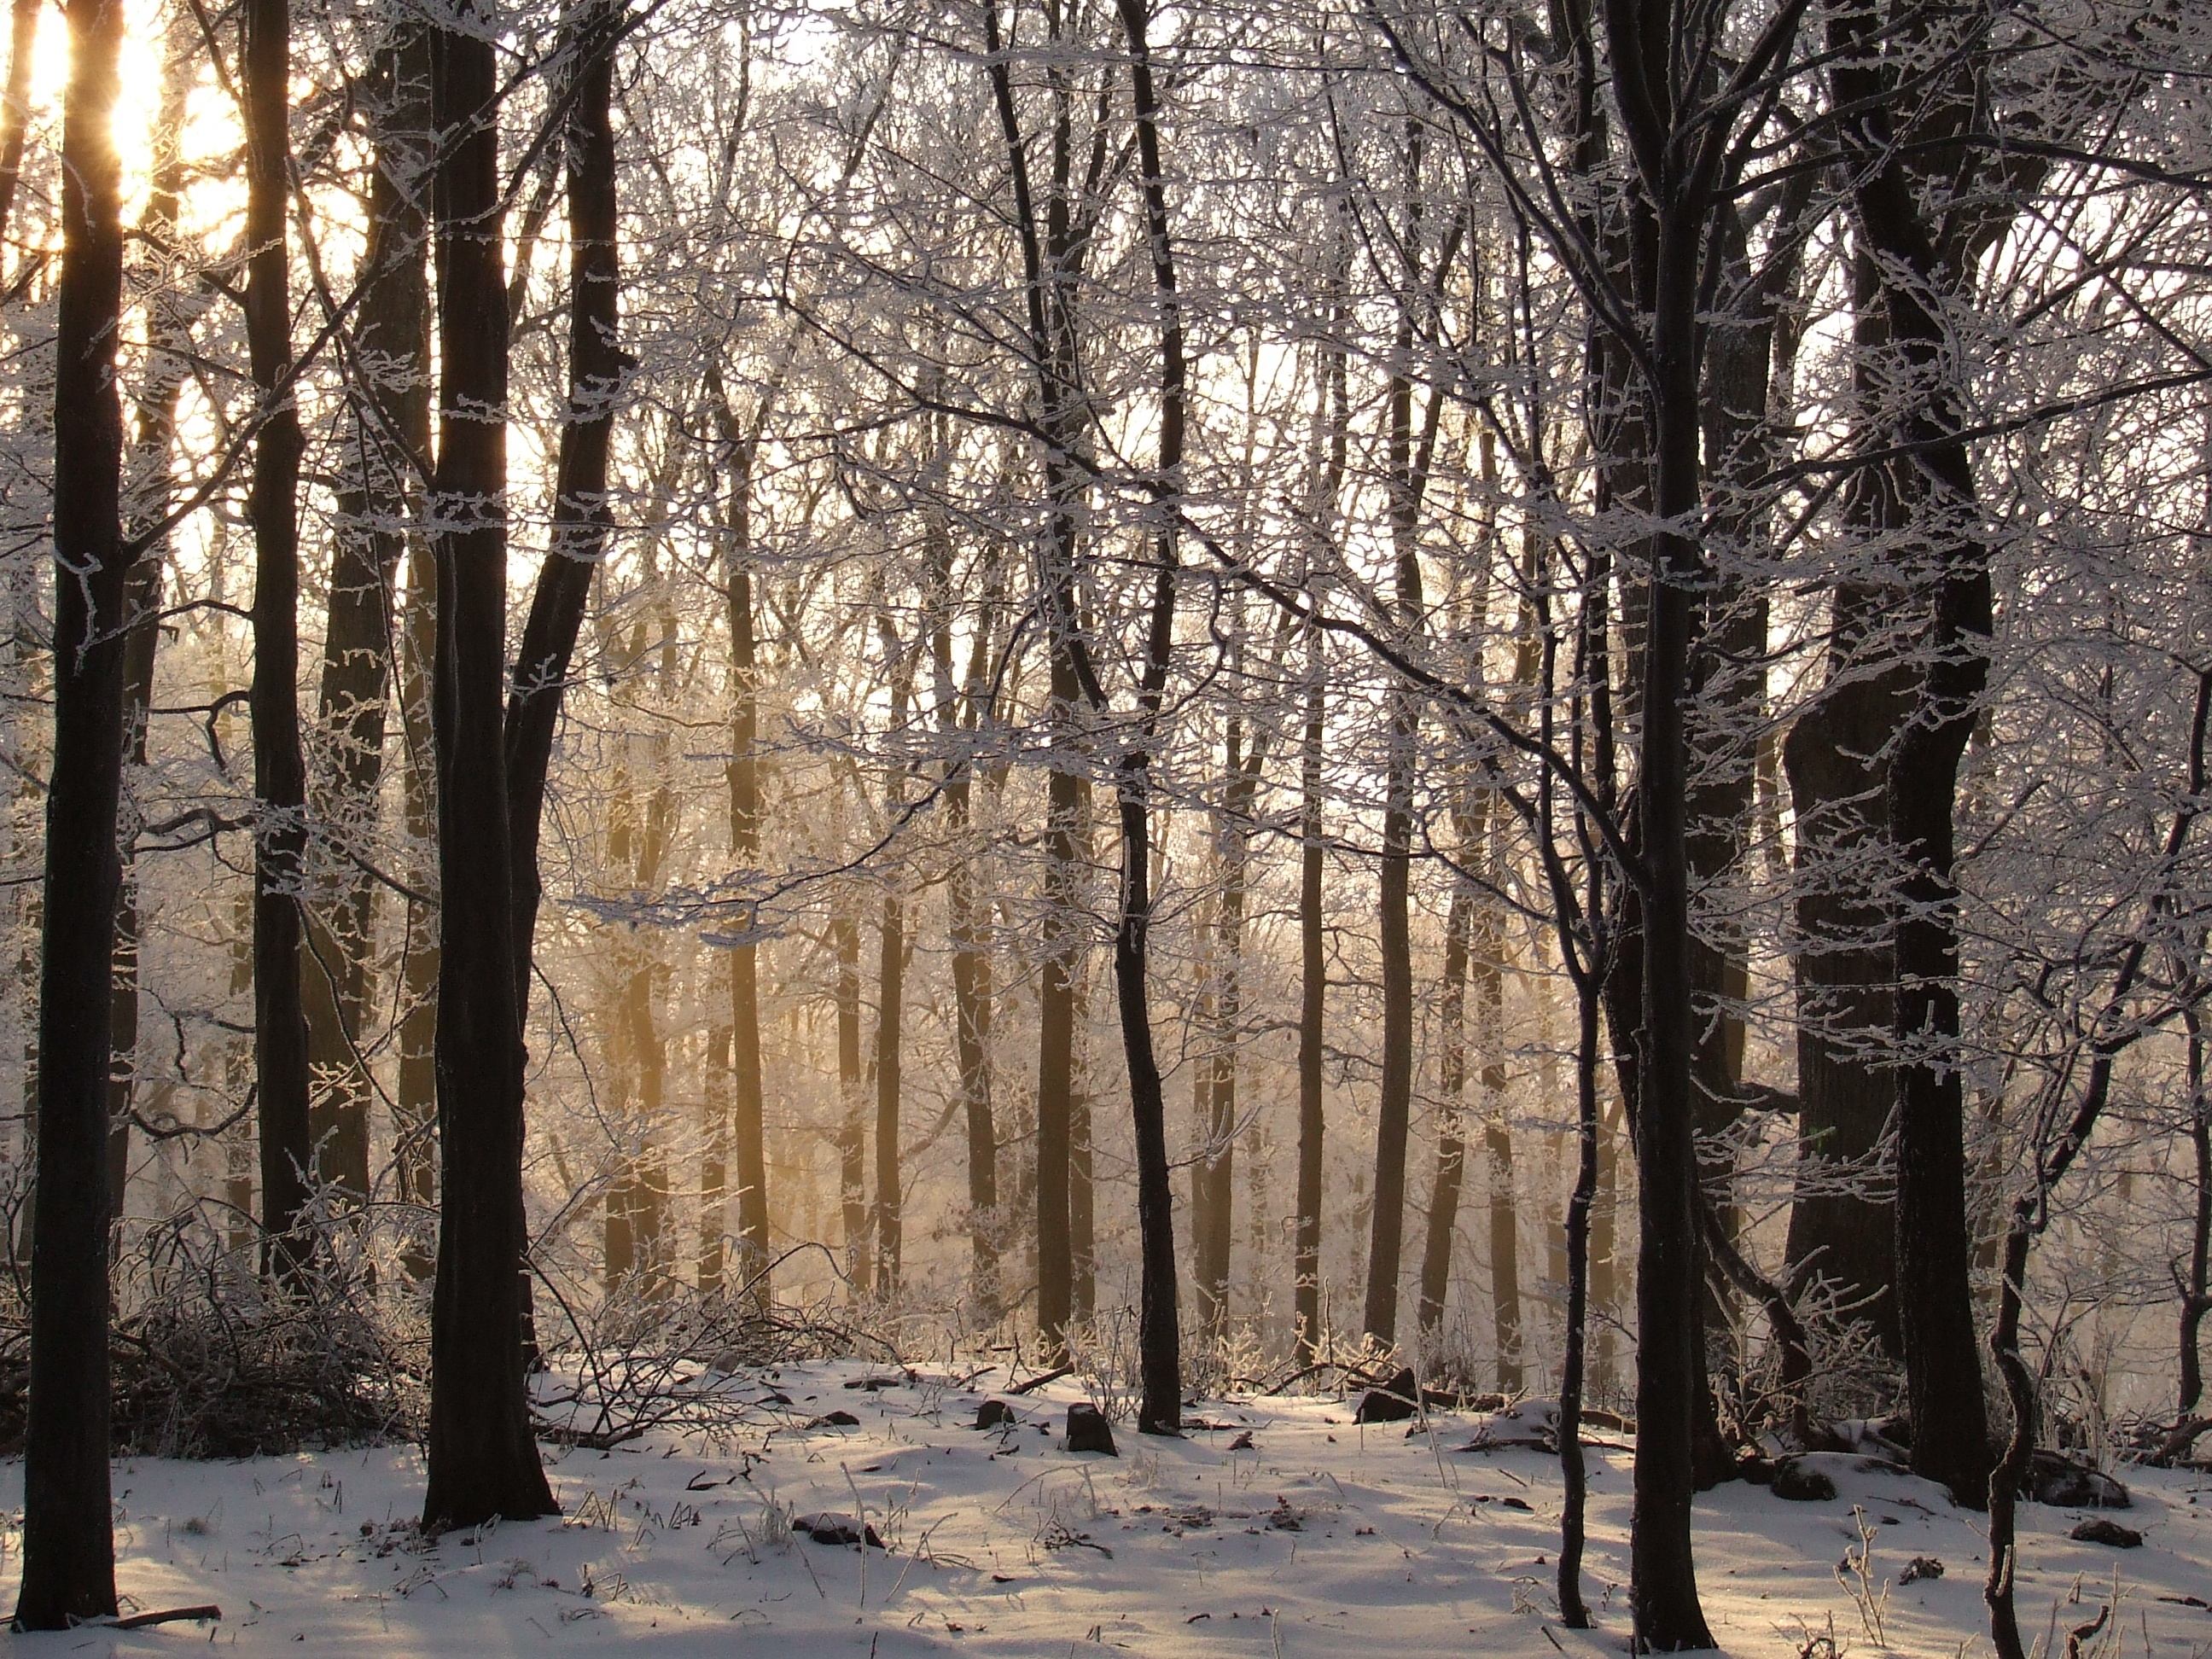 Beech_forest_M%C3%A1tra_in_winter.jpg